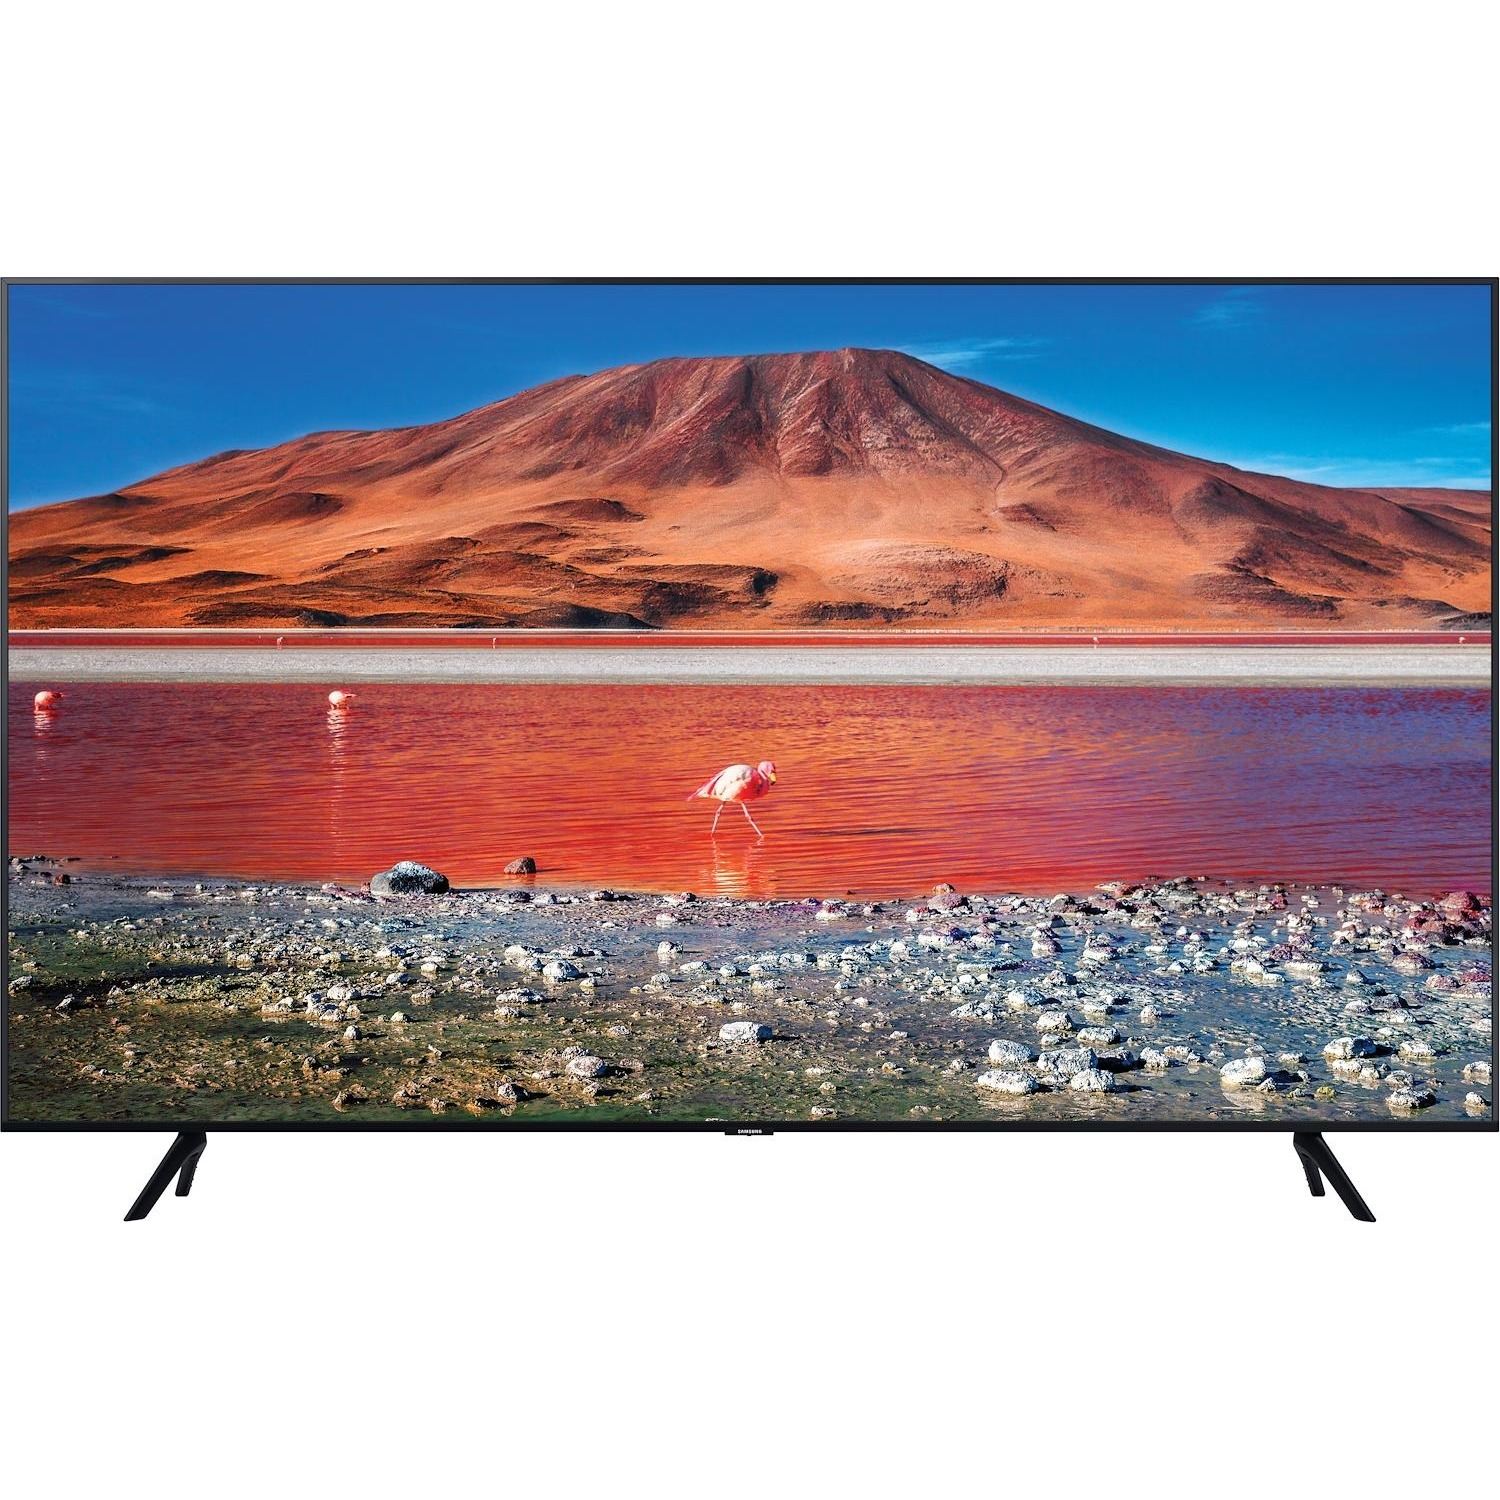 Immagine per TV LED Smart 4K UHD Samsung 55TU7070 da DIMOStore